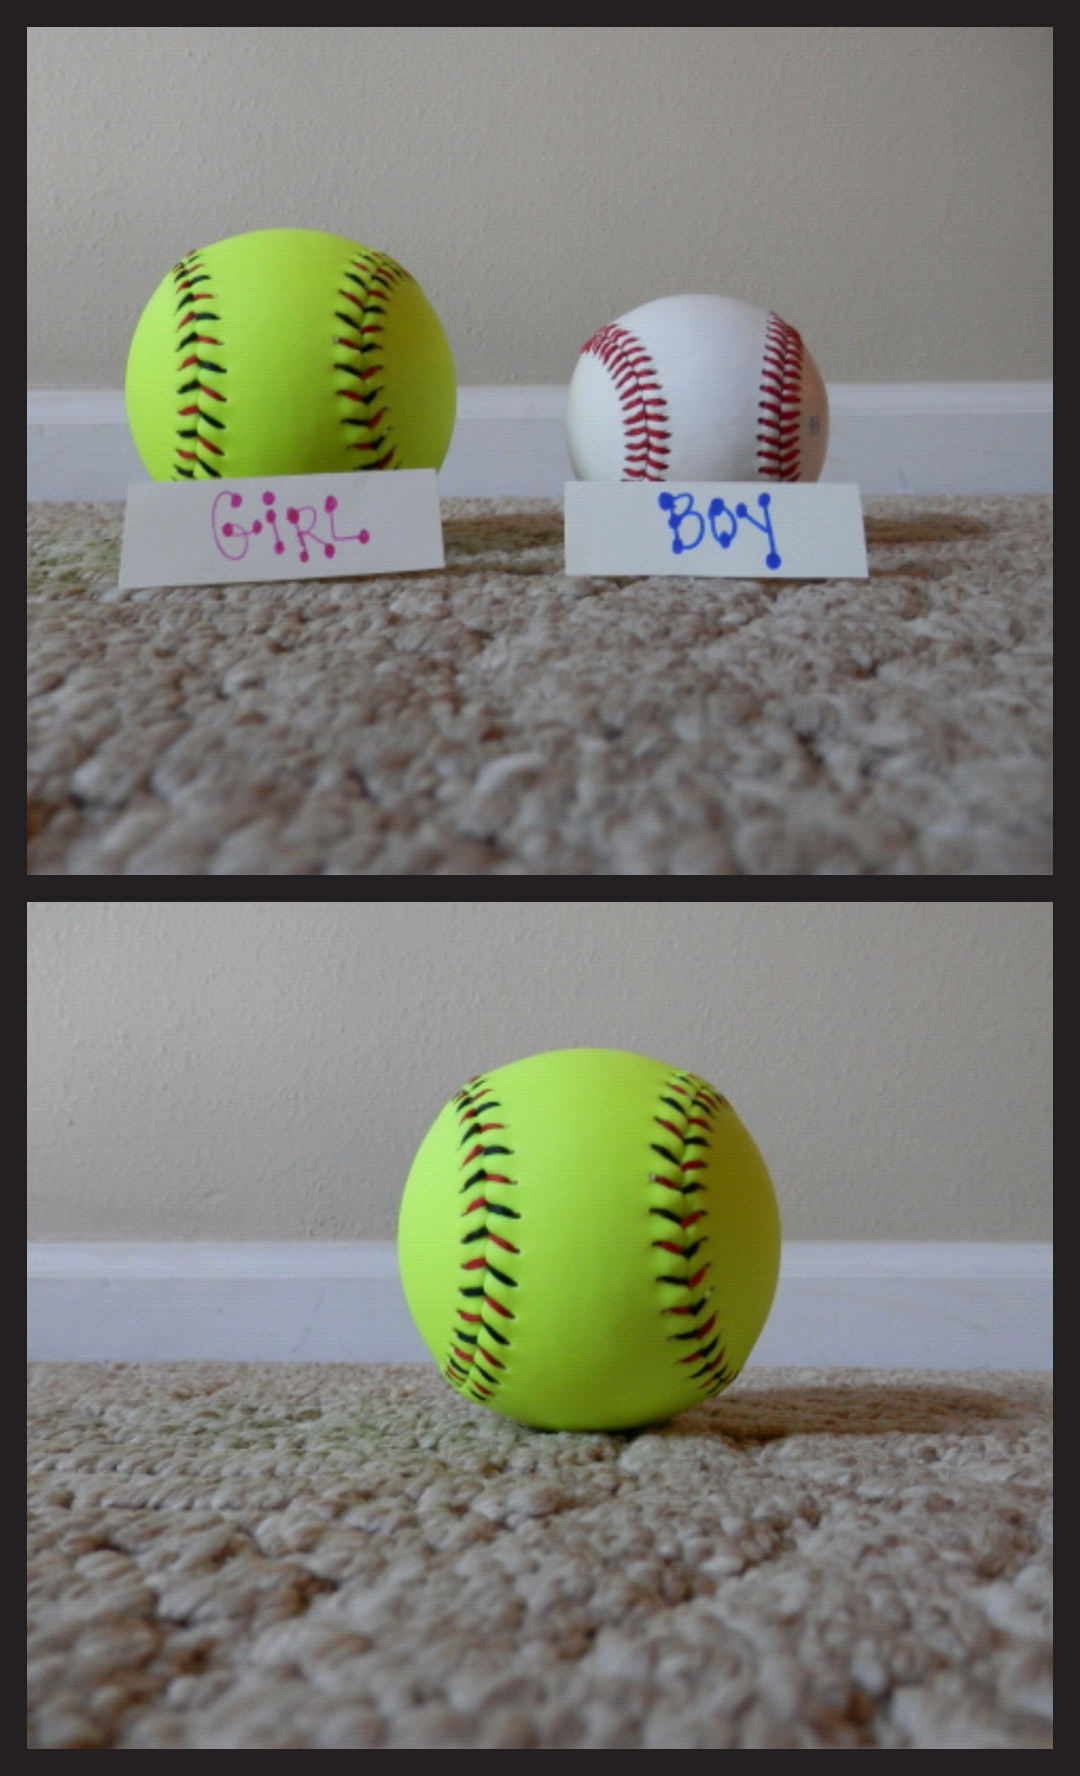 Pin By Darby Alexander On I Can T Wait To Meet You Gender Reveal Photos Baby Gender Reveal Gender Announcements